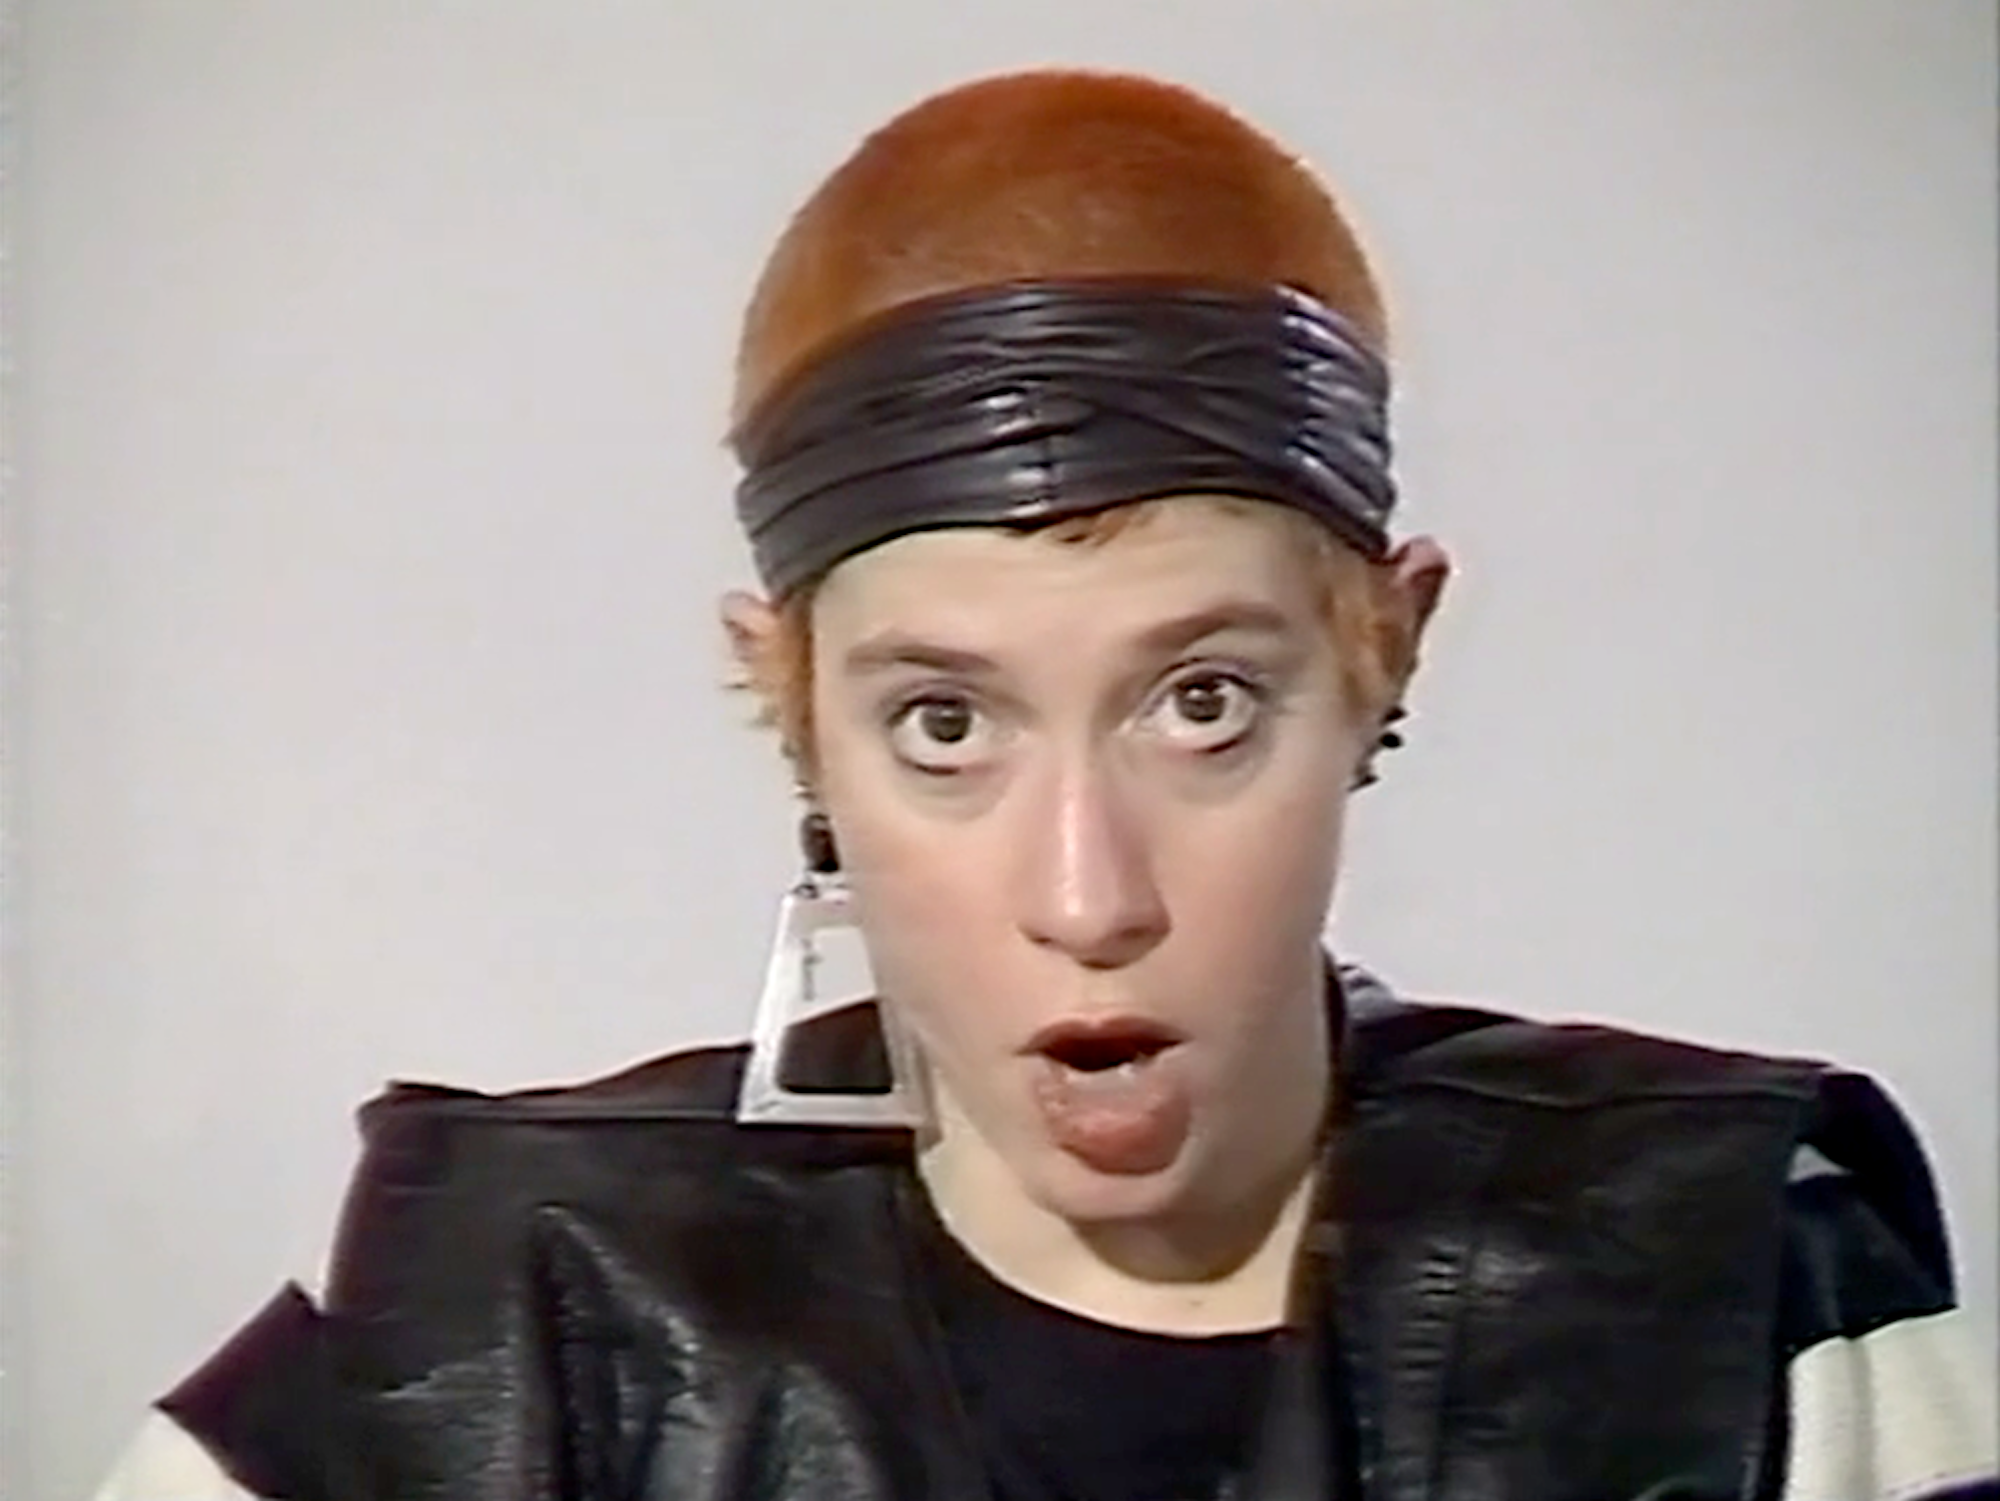 Kathy Acker in conversation with Angela McRobbie at the Institute of Contemporary Arts, 1987. Copyright ICA, London